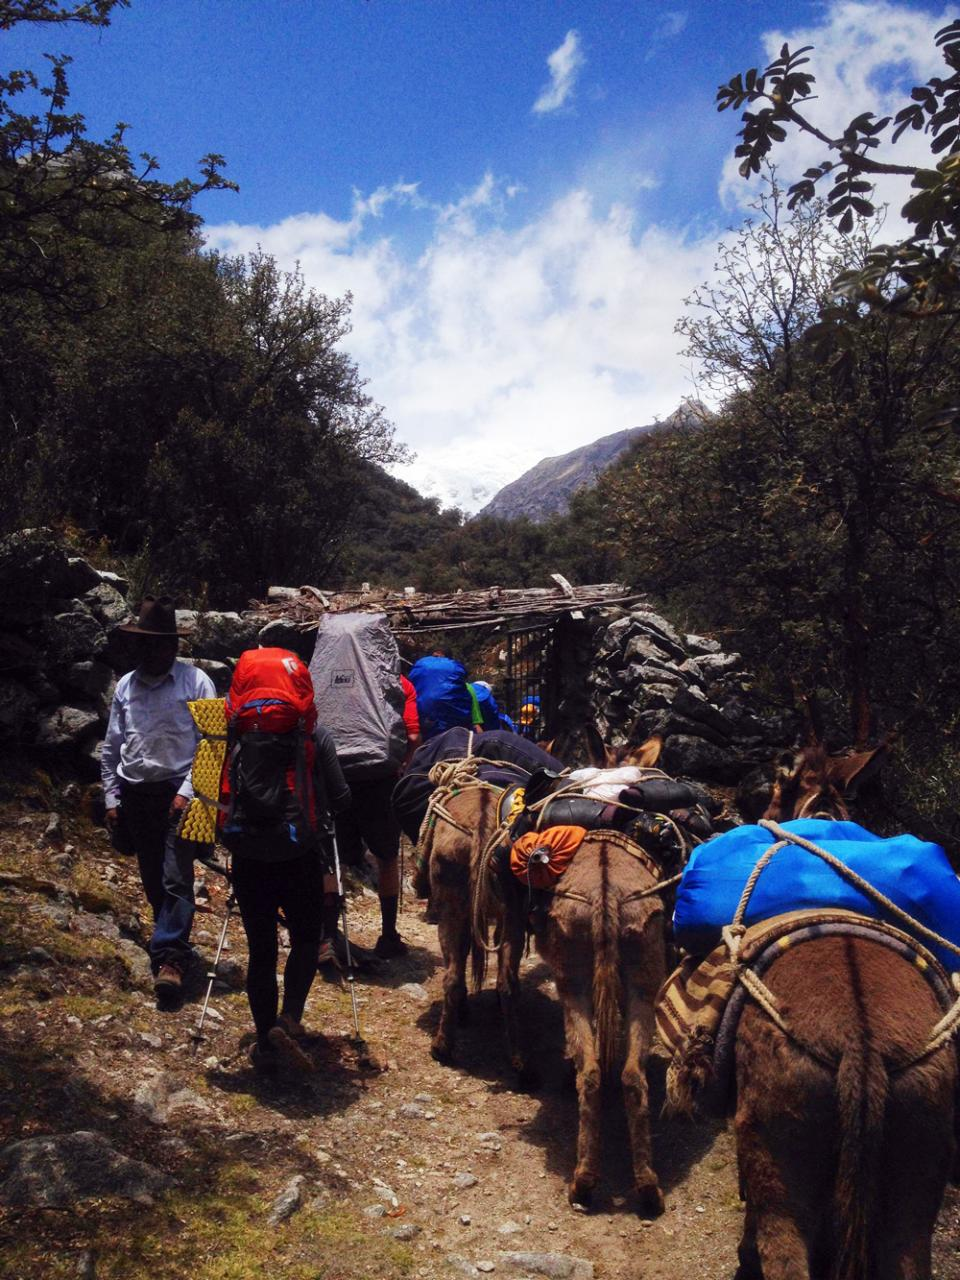 Hiking in with the Burros